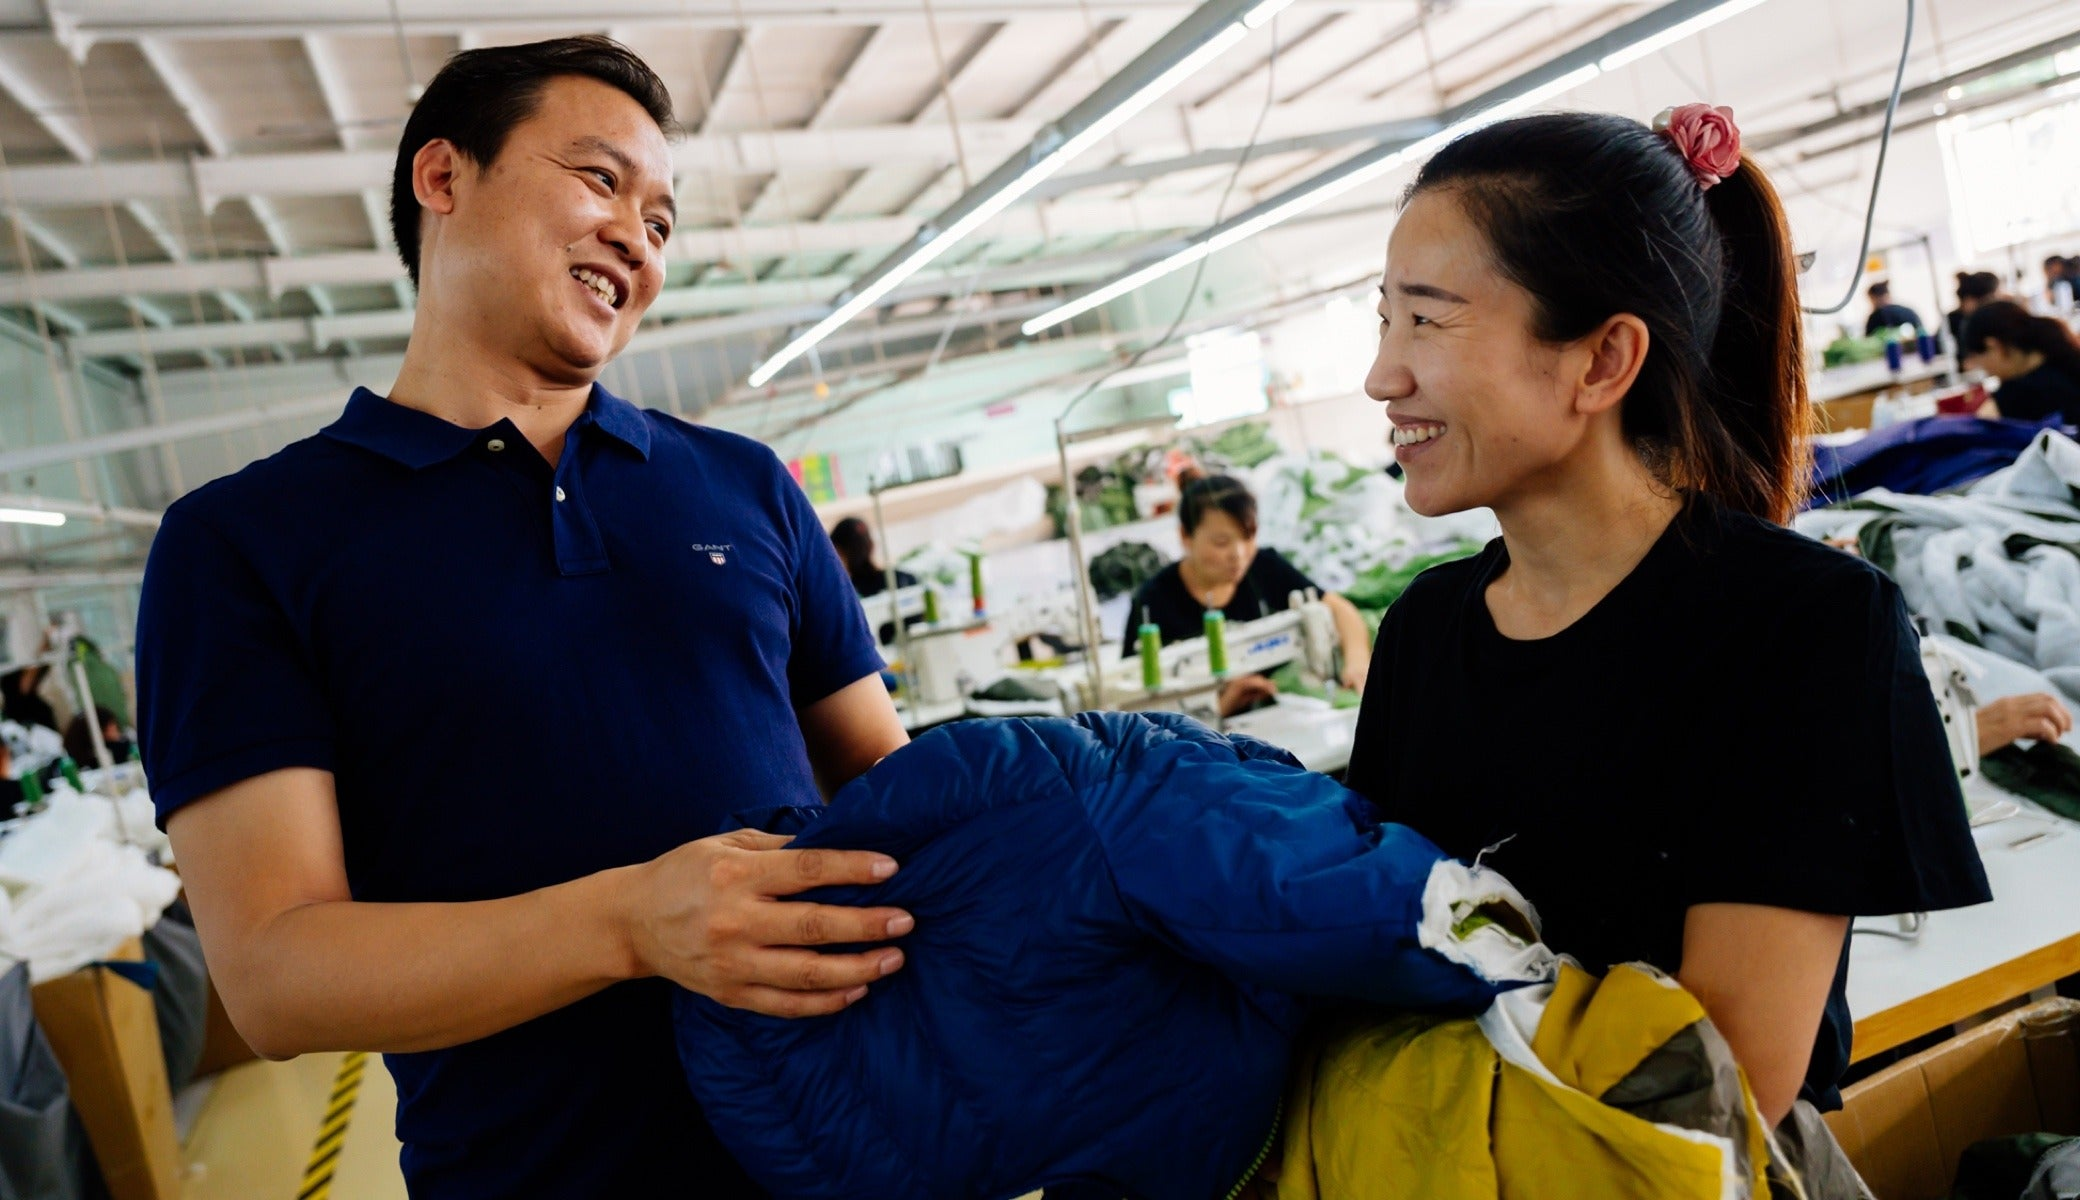 Owner George Huang, left, laughs with employee Song Xiao Ying at the factory outside of Tianjin